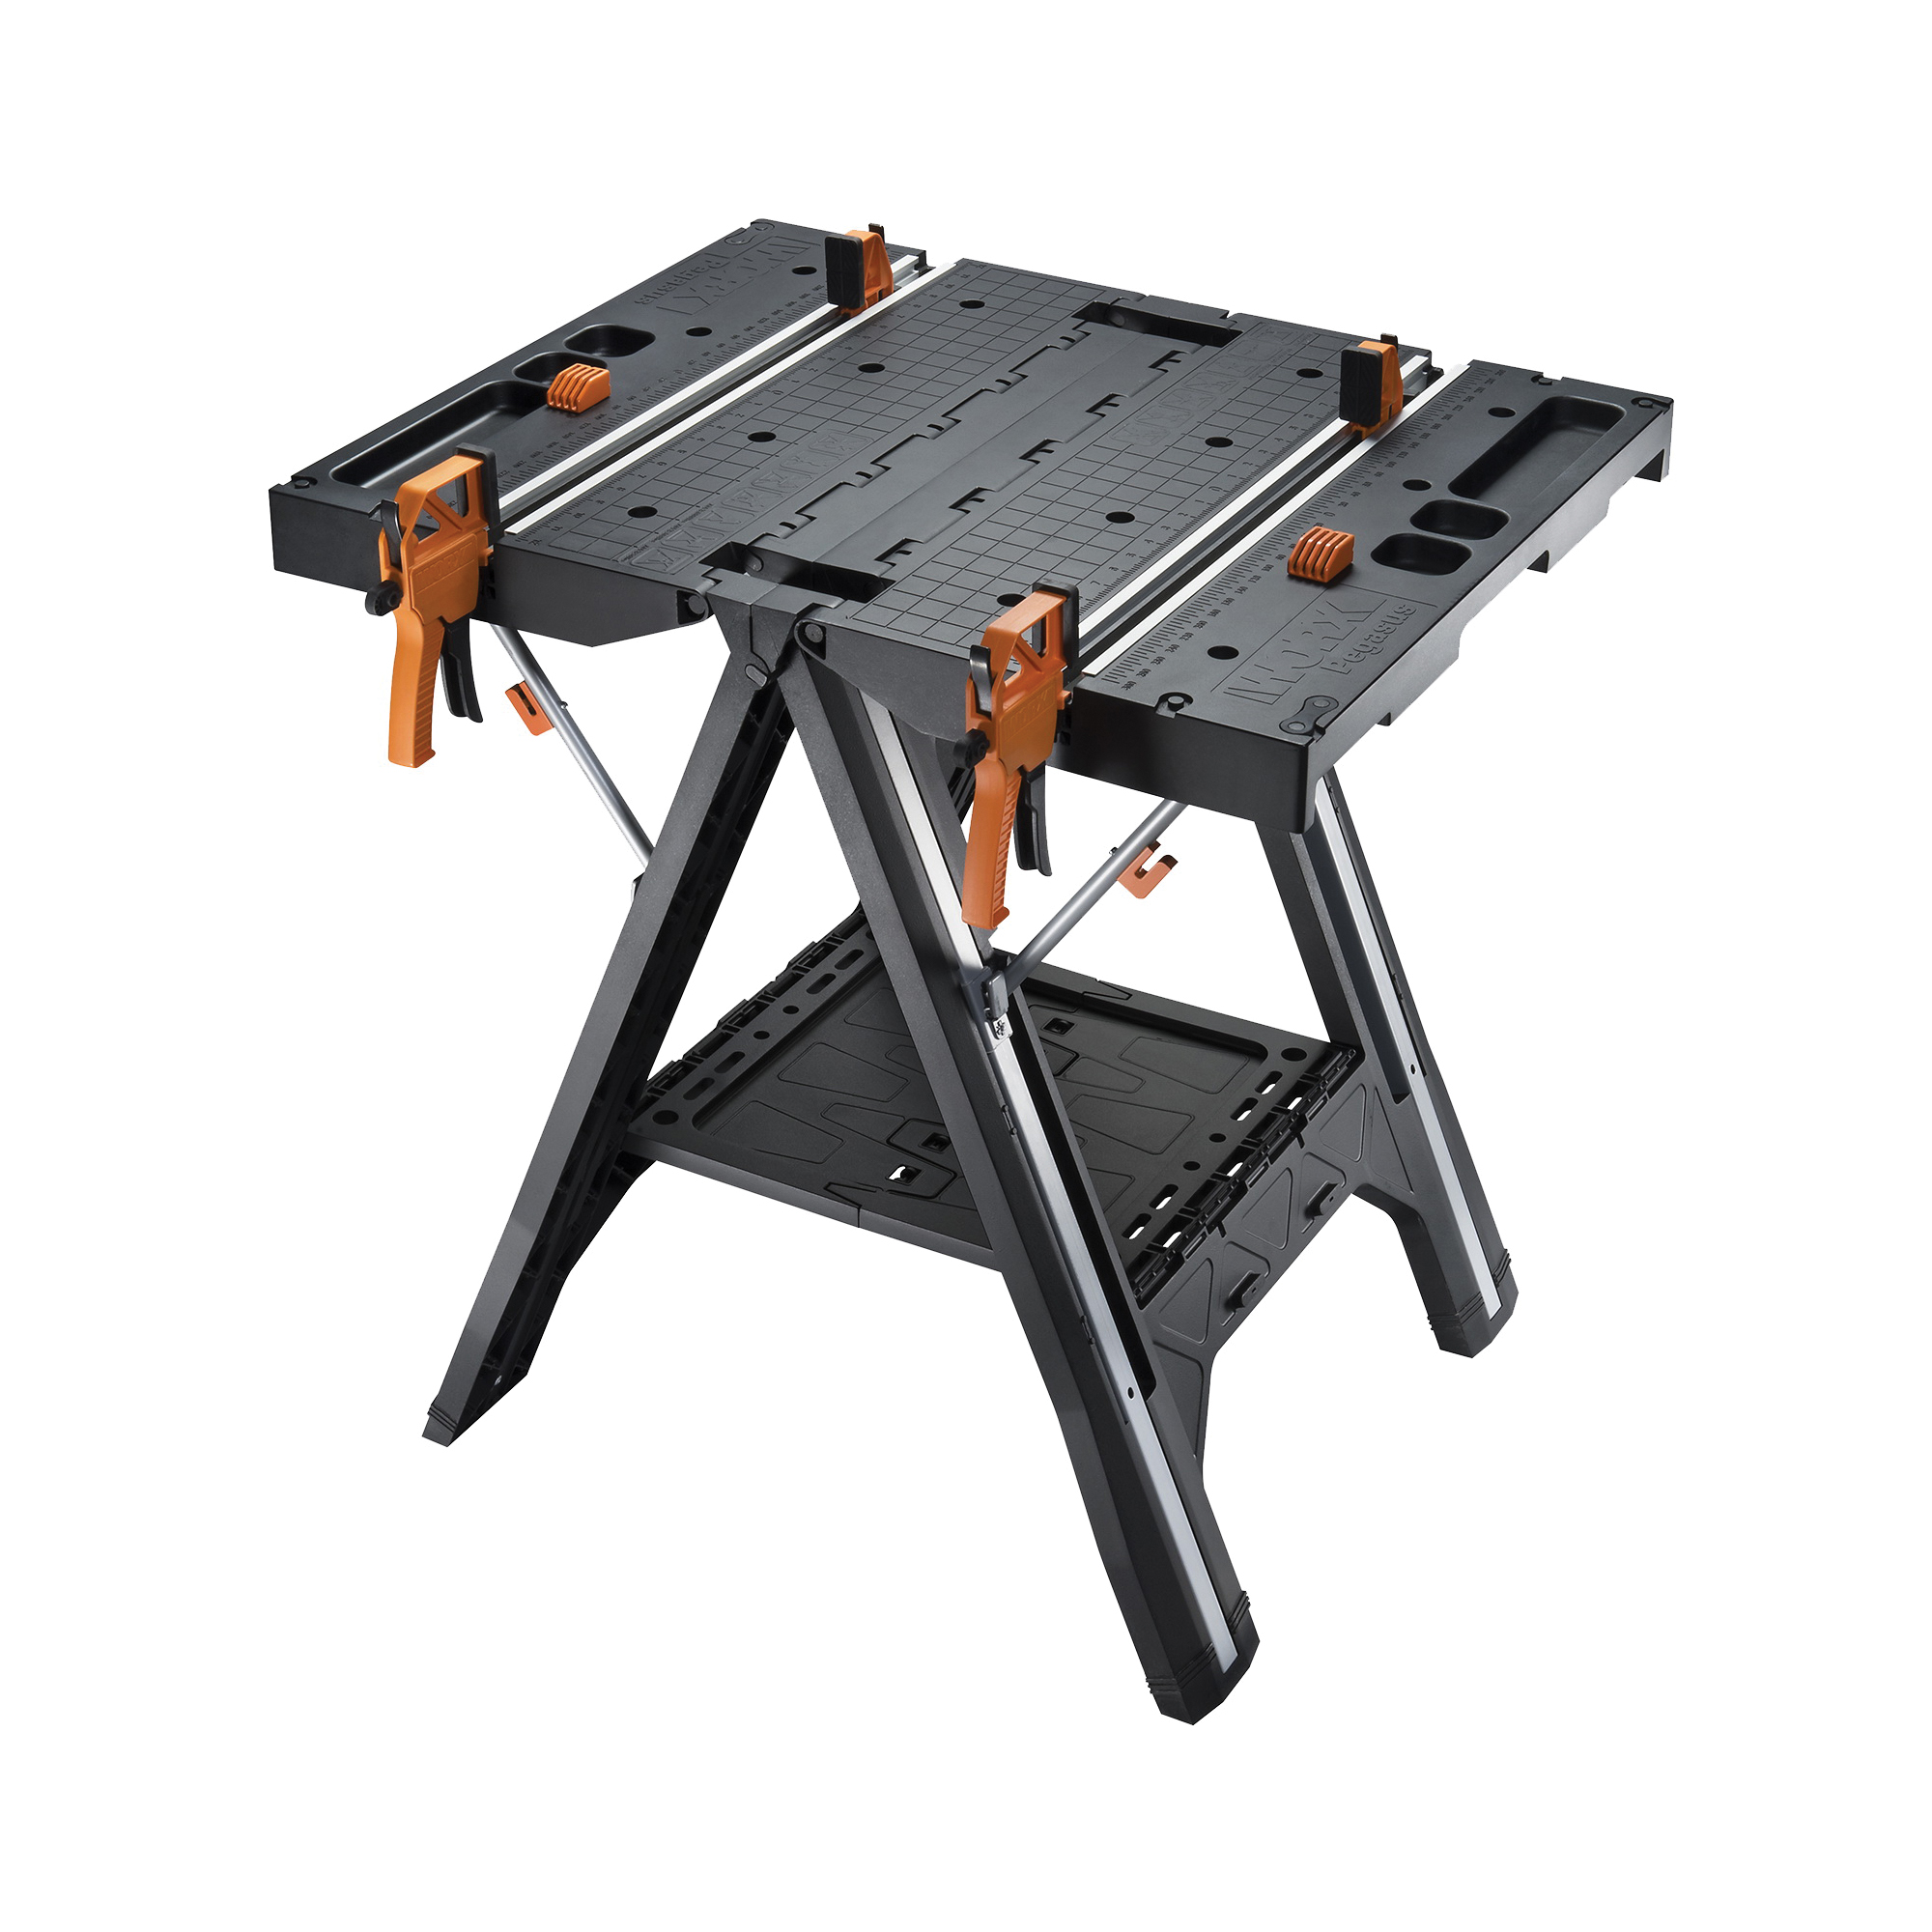 Picture of ROCKWELL WX051 Folding Work Table with Quick Clamps, 25 in OAW, 31 in OAH, 300 lb Capacity, Plastic Tabletop